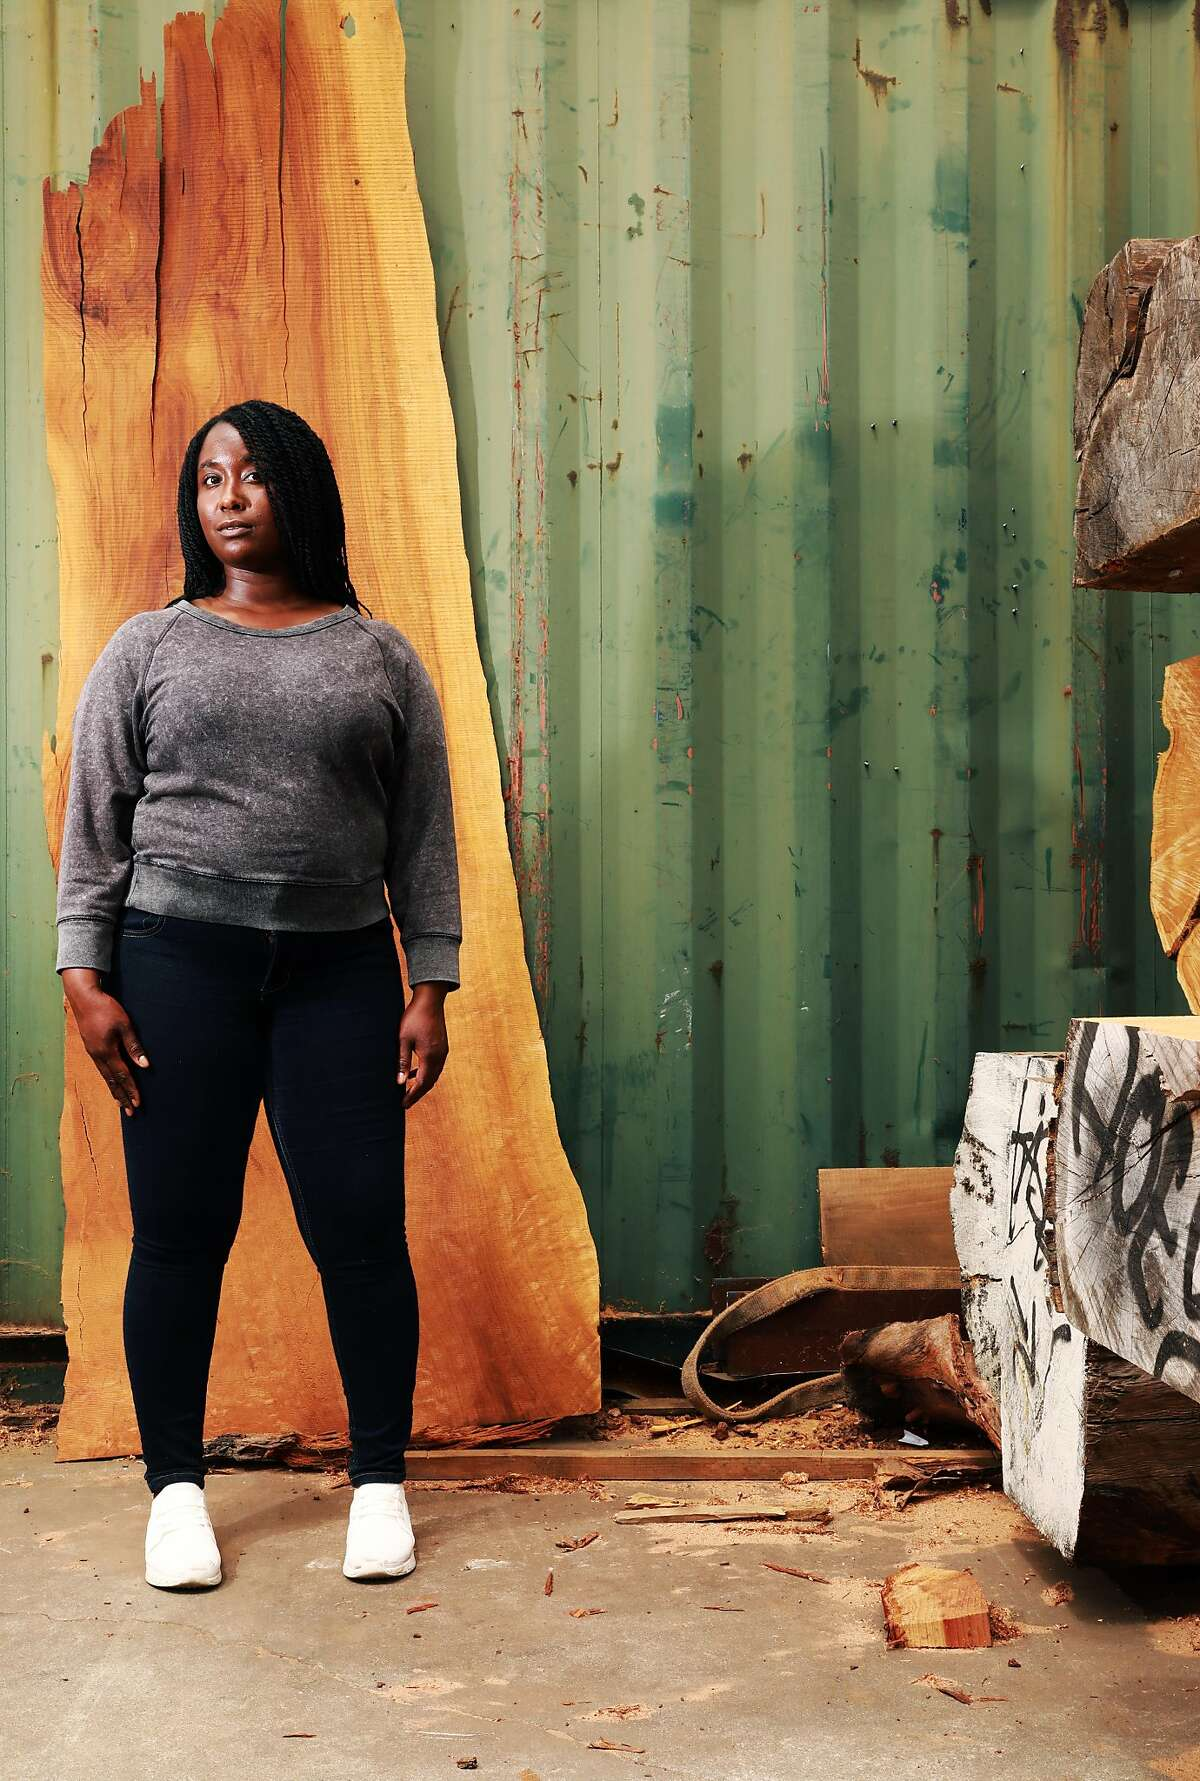 Oakland visual artist Binta Ayofemi wants to create a black commons for the city, and she's turning to food as her medium.